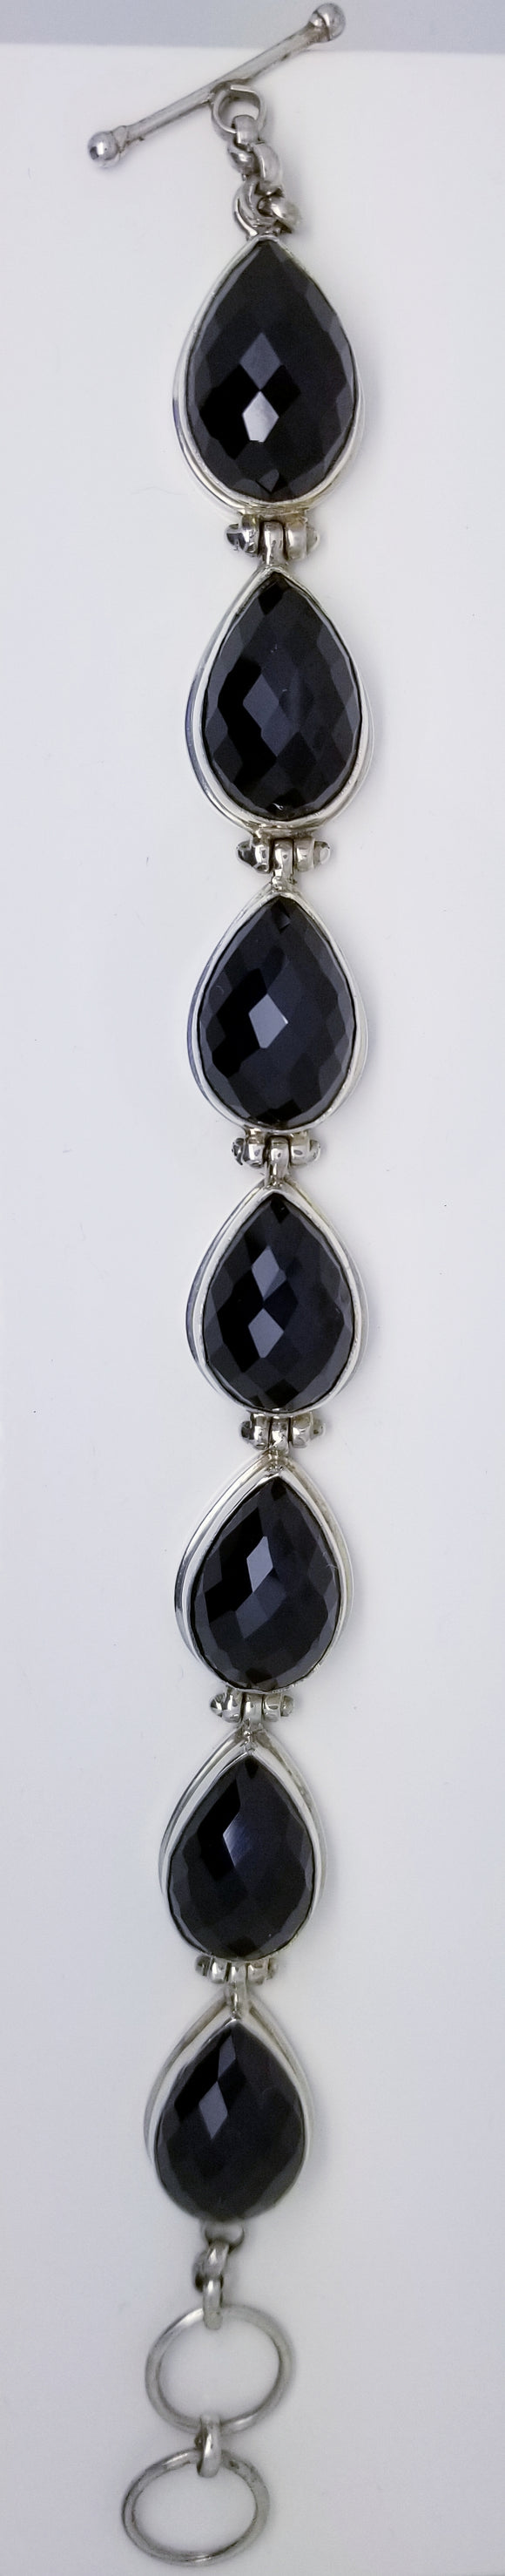 Sterling Silver With 7 Large Faceted Onyx Stone Bracelet